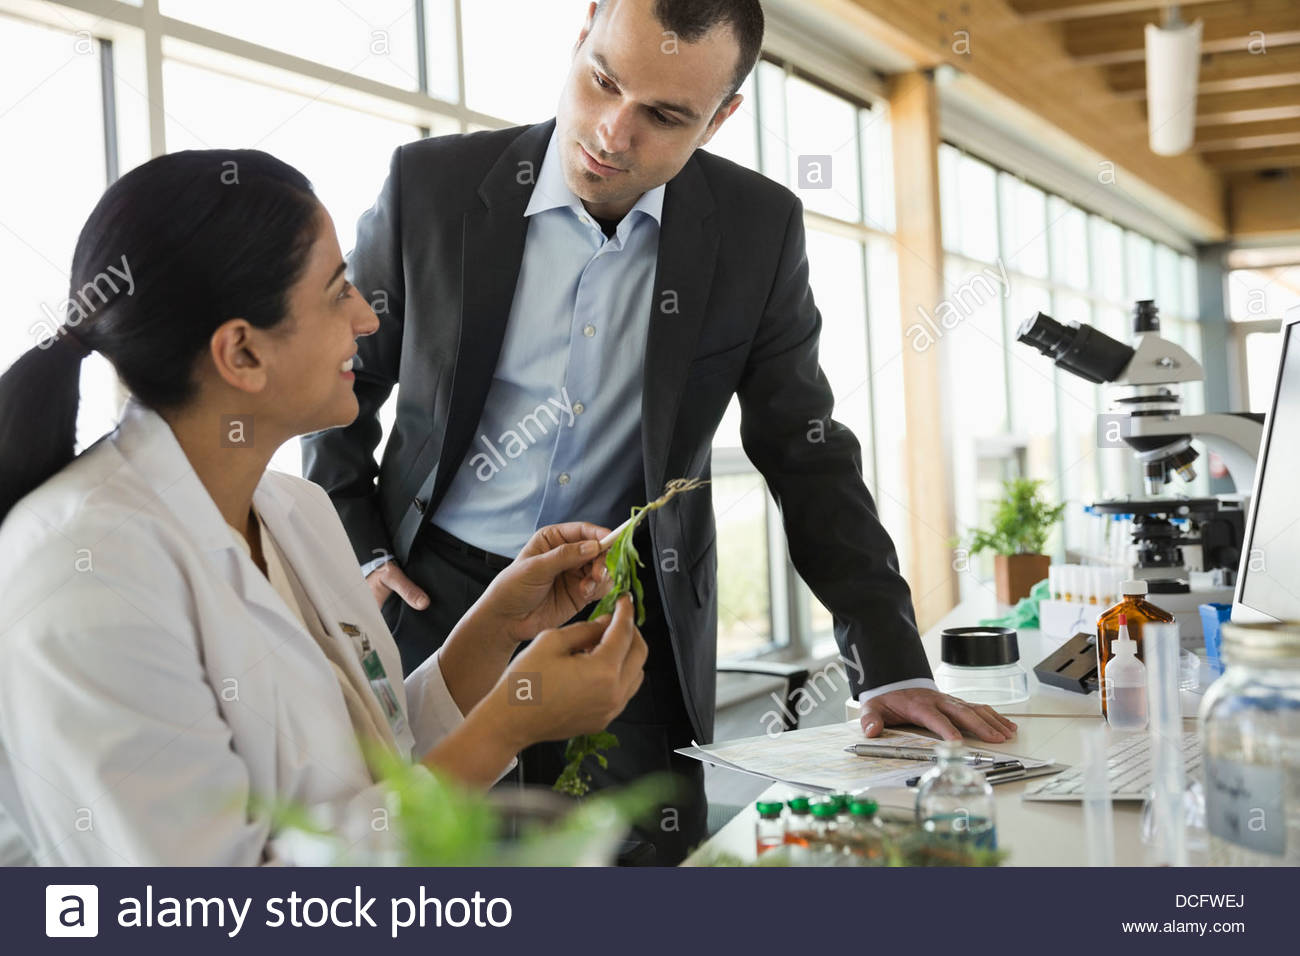 Businessman discussing with botanist in laboratory - Stock Image